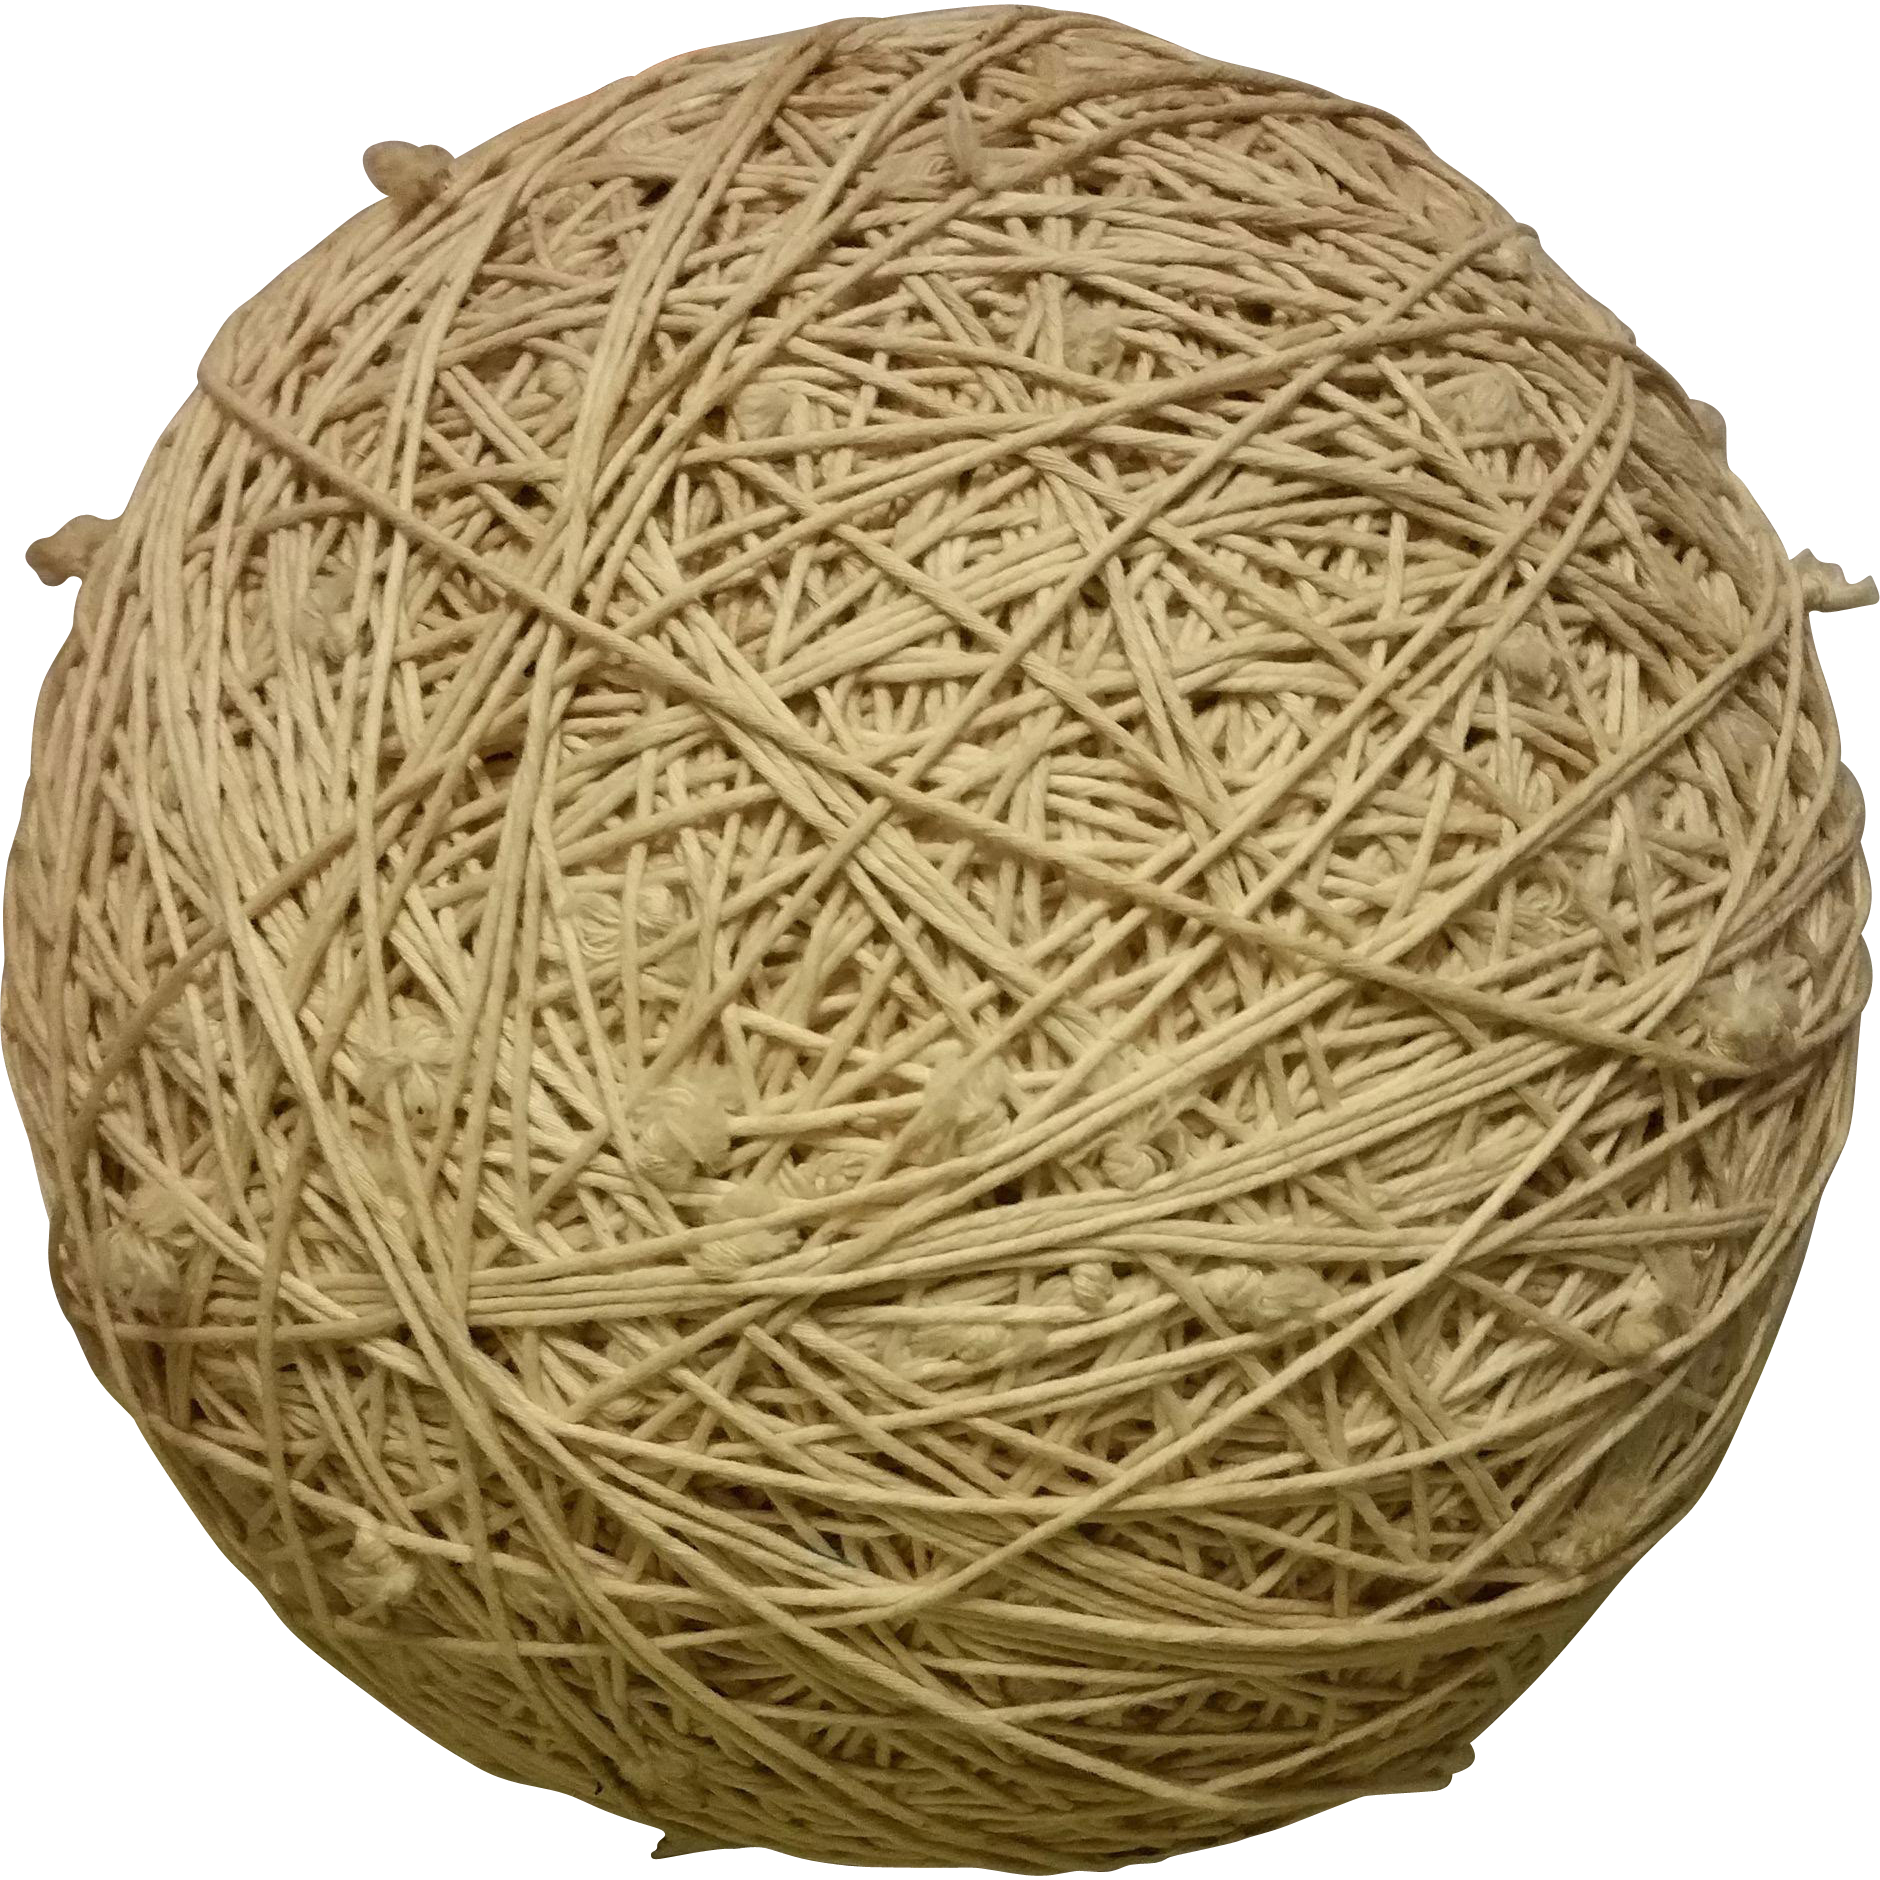 ball of yarn - photo #42